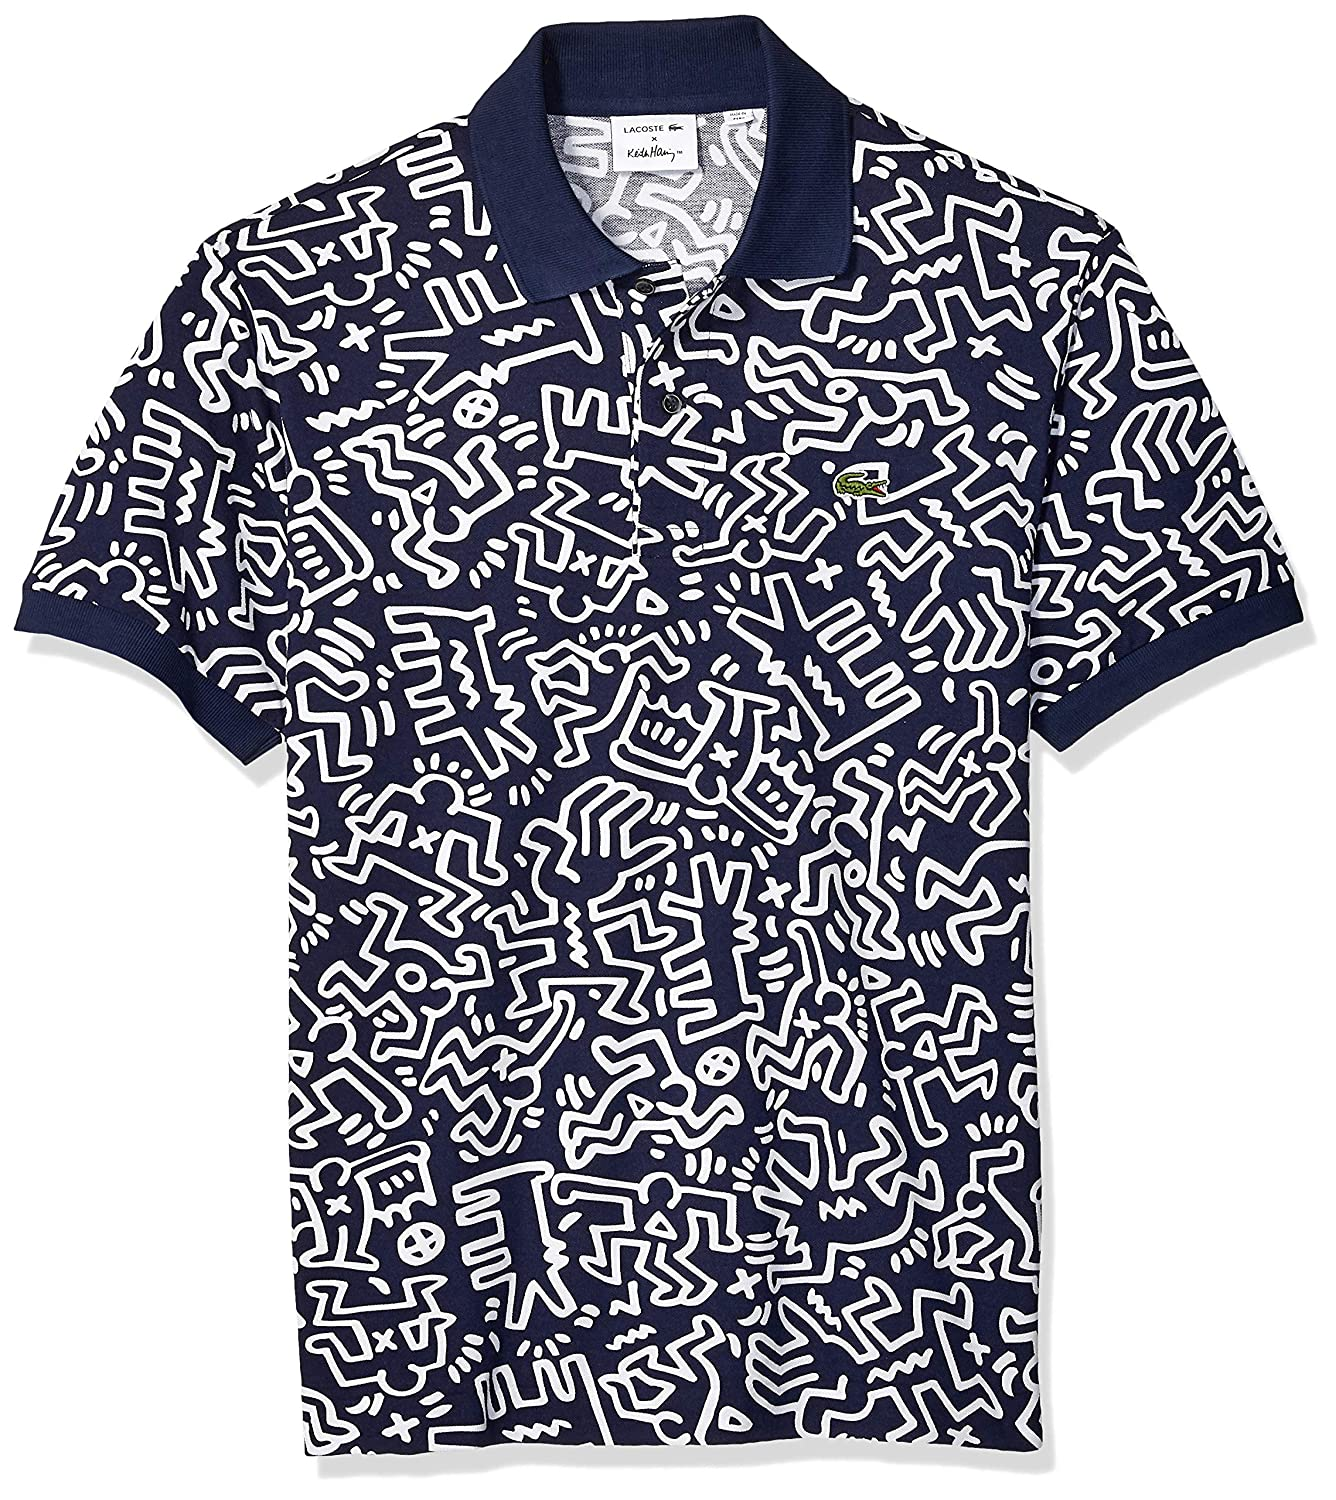 7f225ae4a9 Lacoste Men's S/S All Over Printed Mini Pique Polo Classic Fit